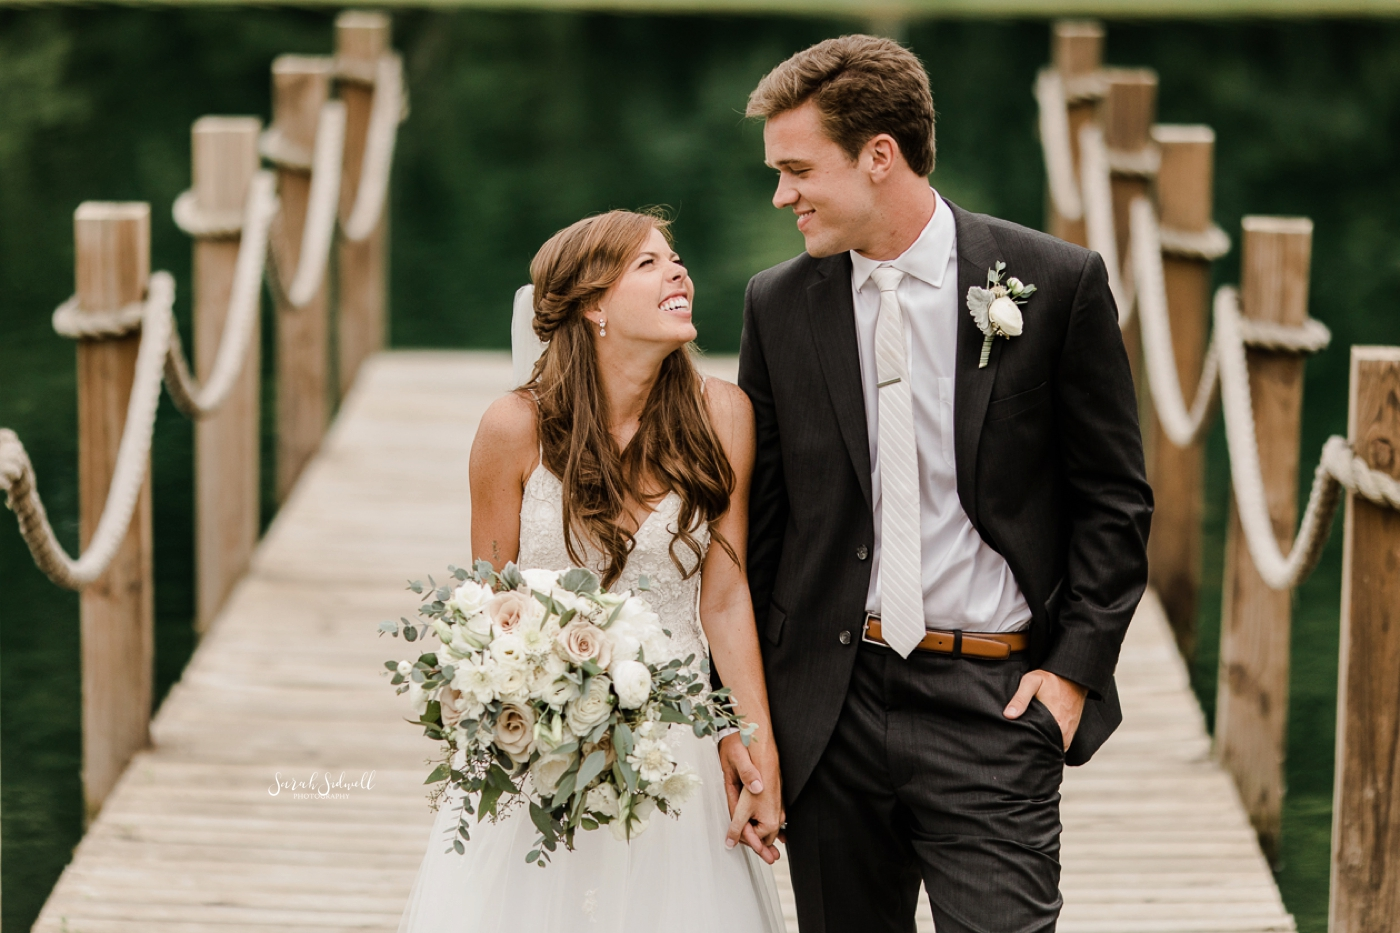 Graystone Quarry | Sarah Sidwell Photography